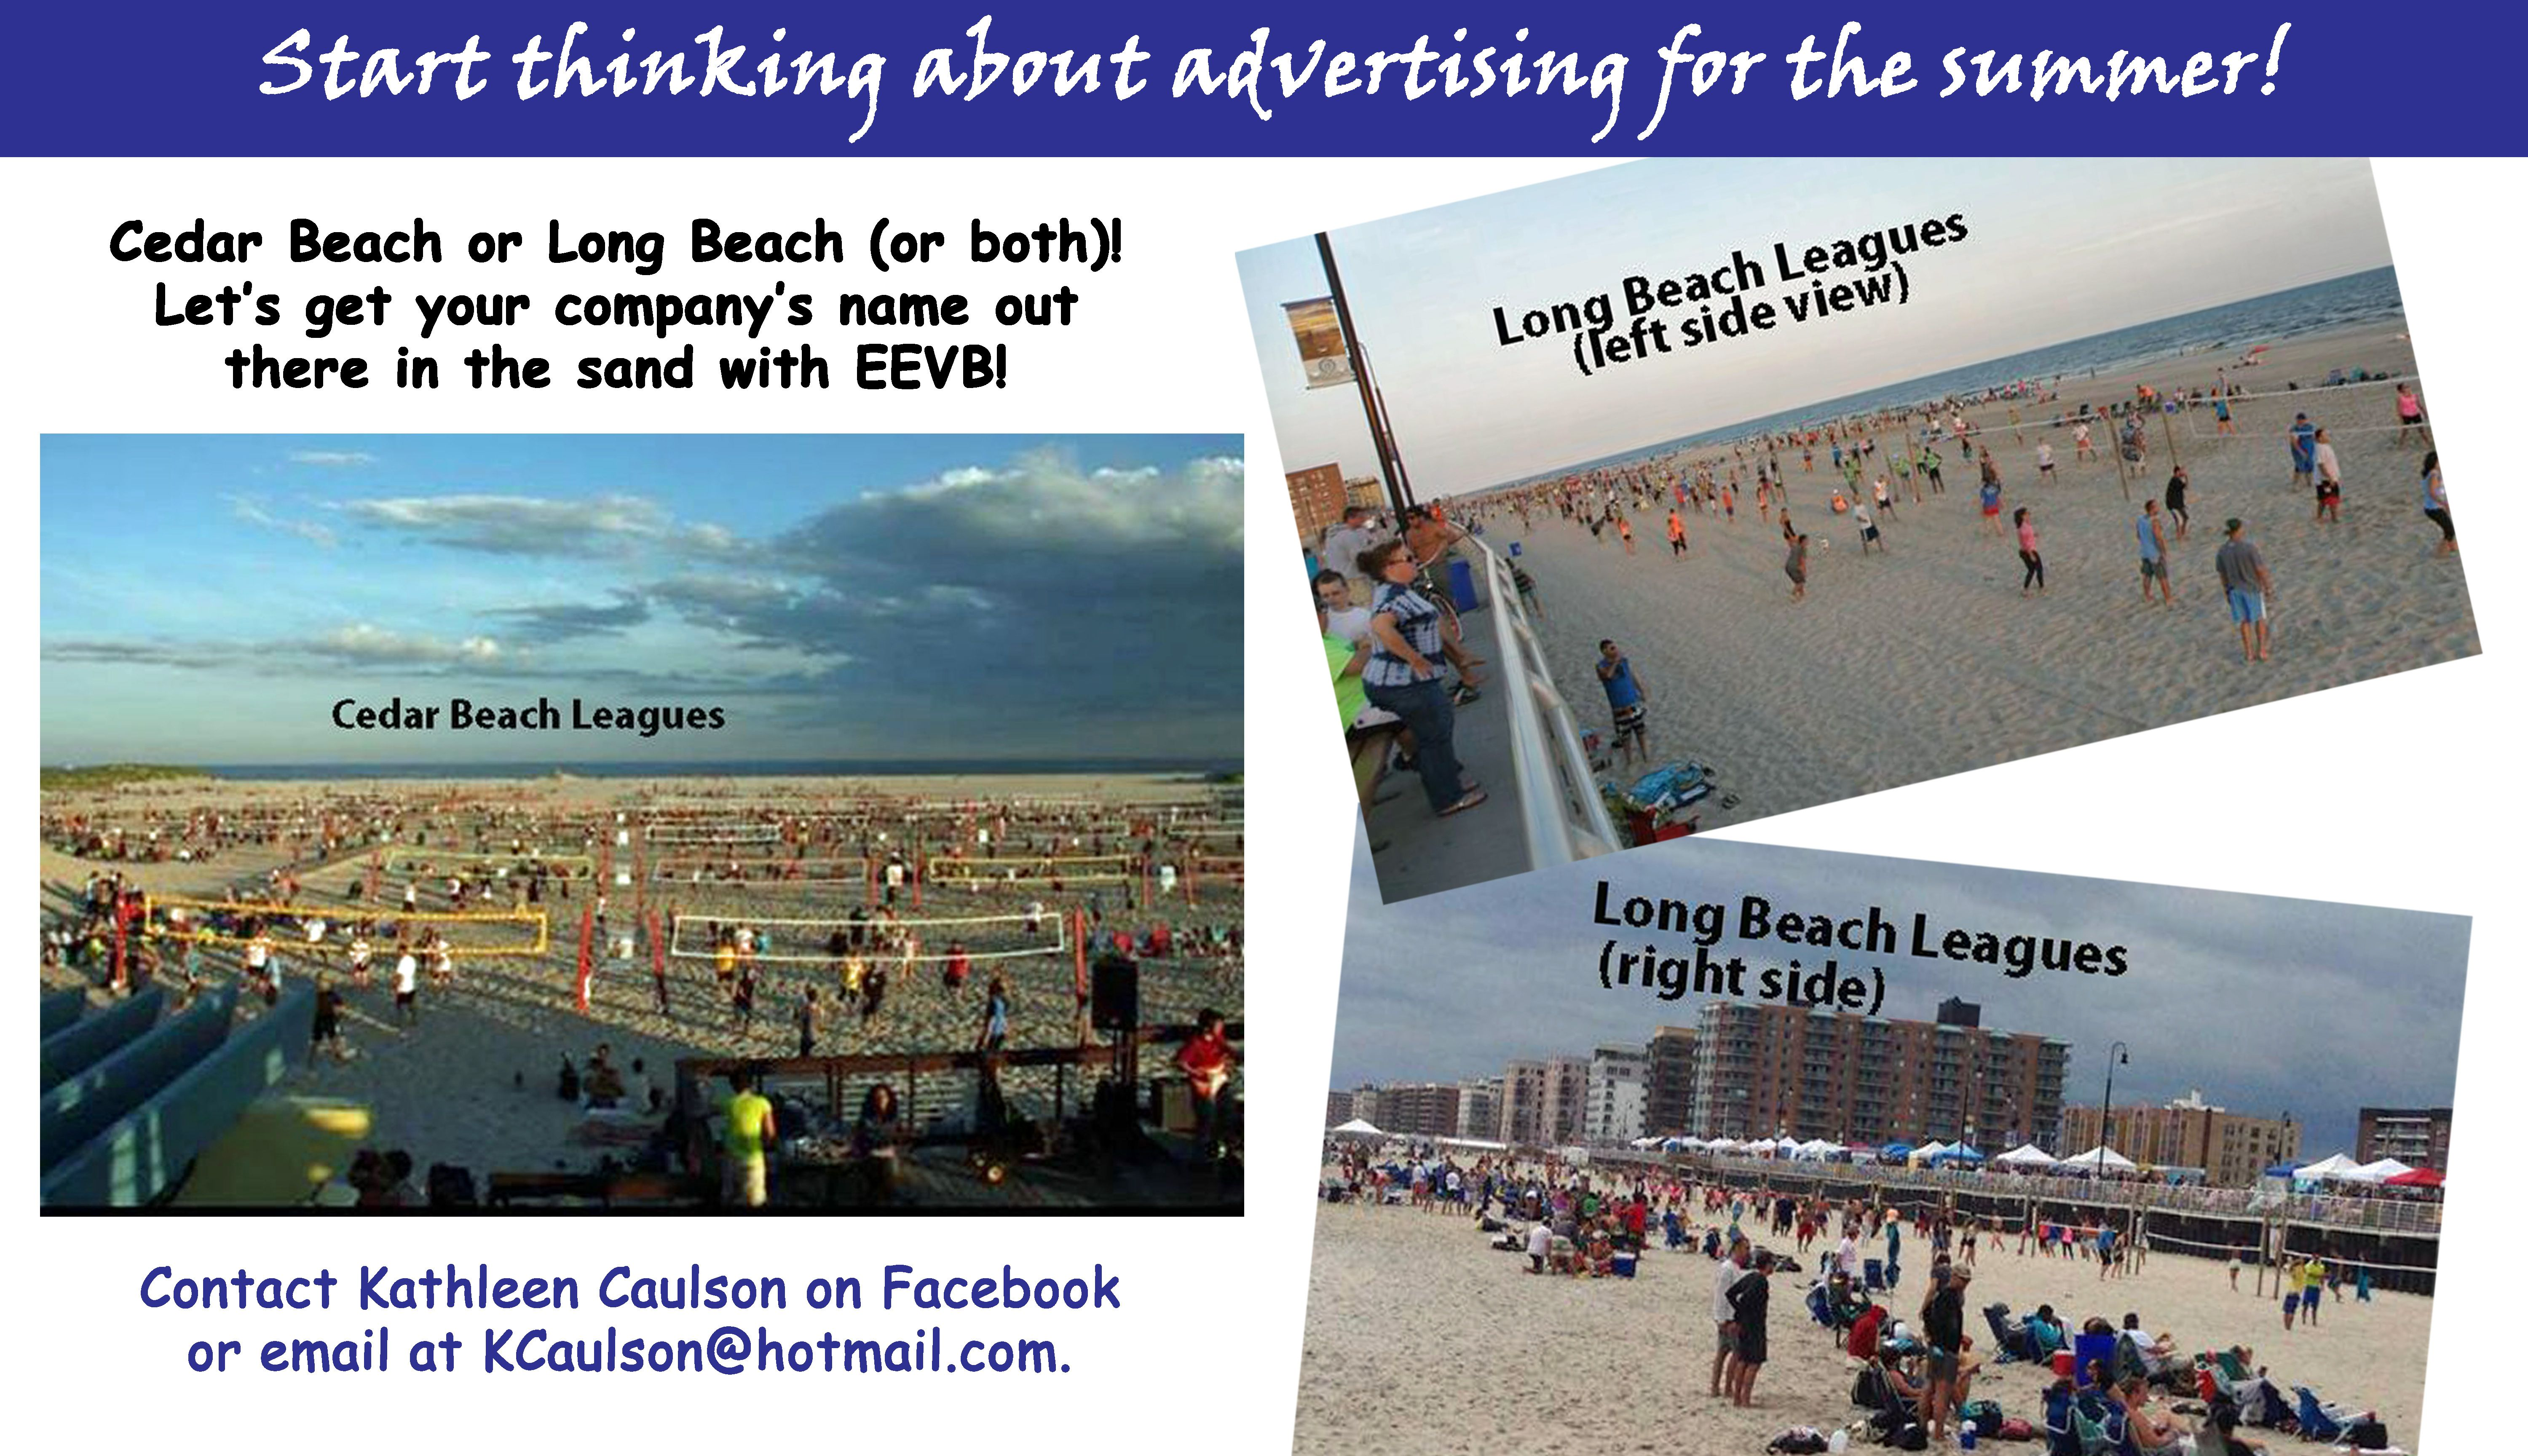 2015 Summer Beach Volleyball Season Is Quickly Approaching Yeah Think About Becoming An Eevb Sponsor And Dig It In The Long Beach Us Beaches Summer Beach